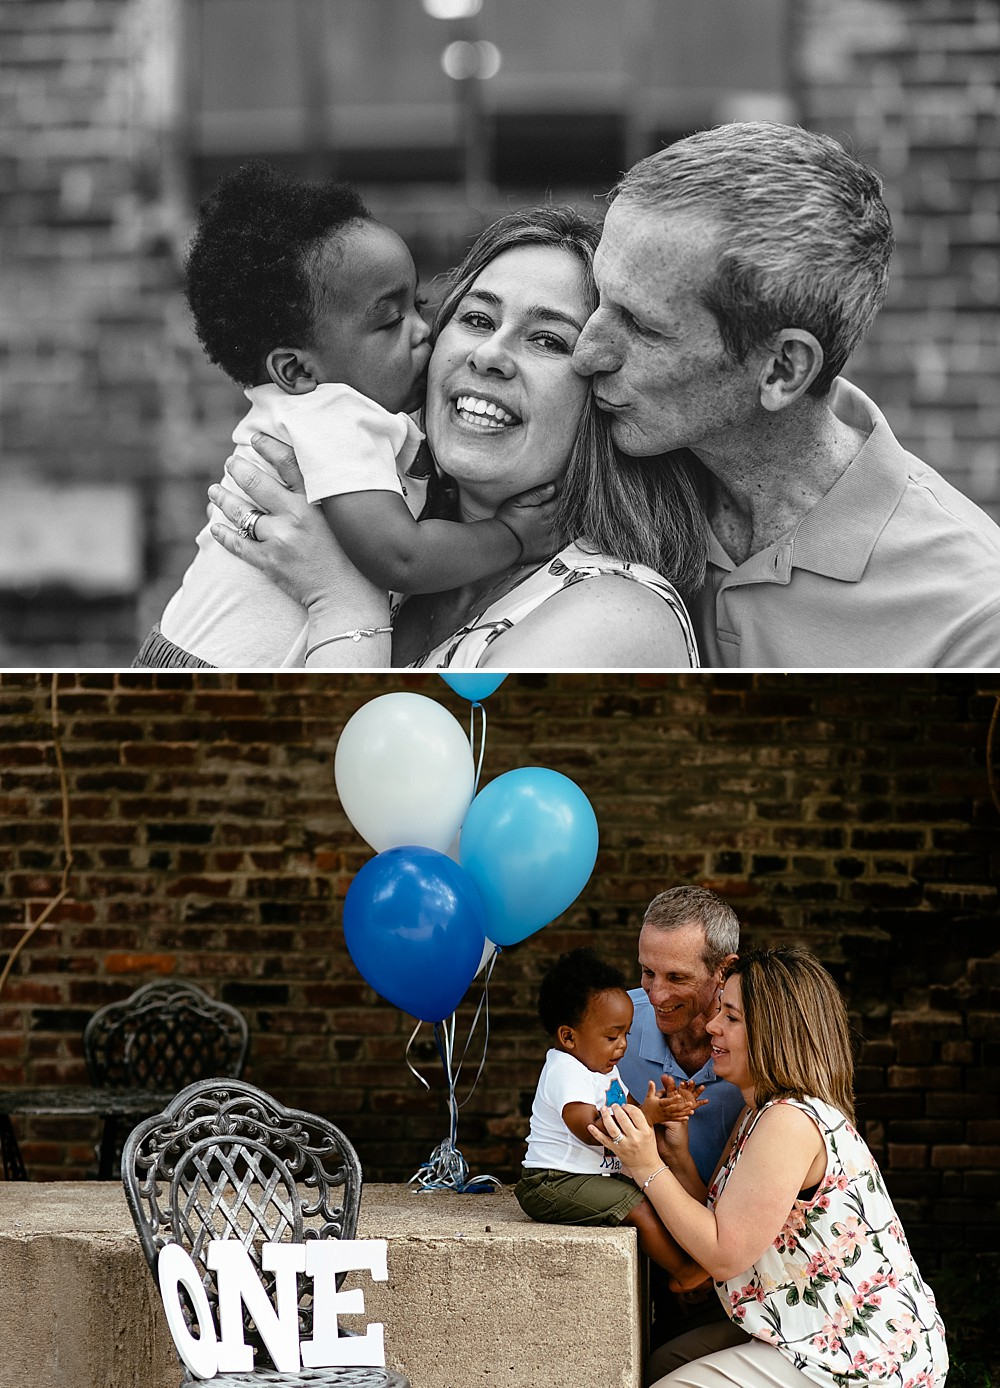 Two images of a family of three. Black and white image with Dad and Son kissing mommy. Image of mom and dad interacting with Son while he sits on cement block with blue and white balloons in the background